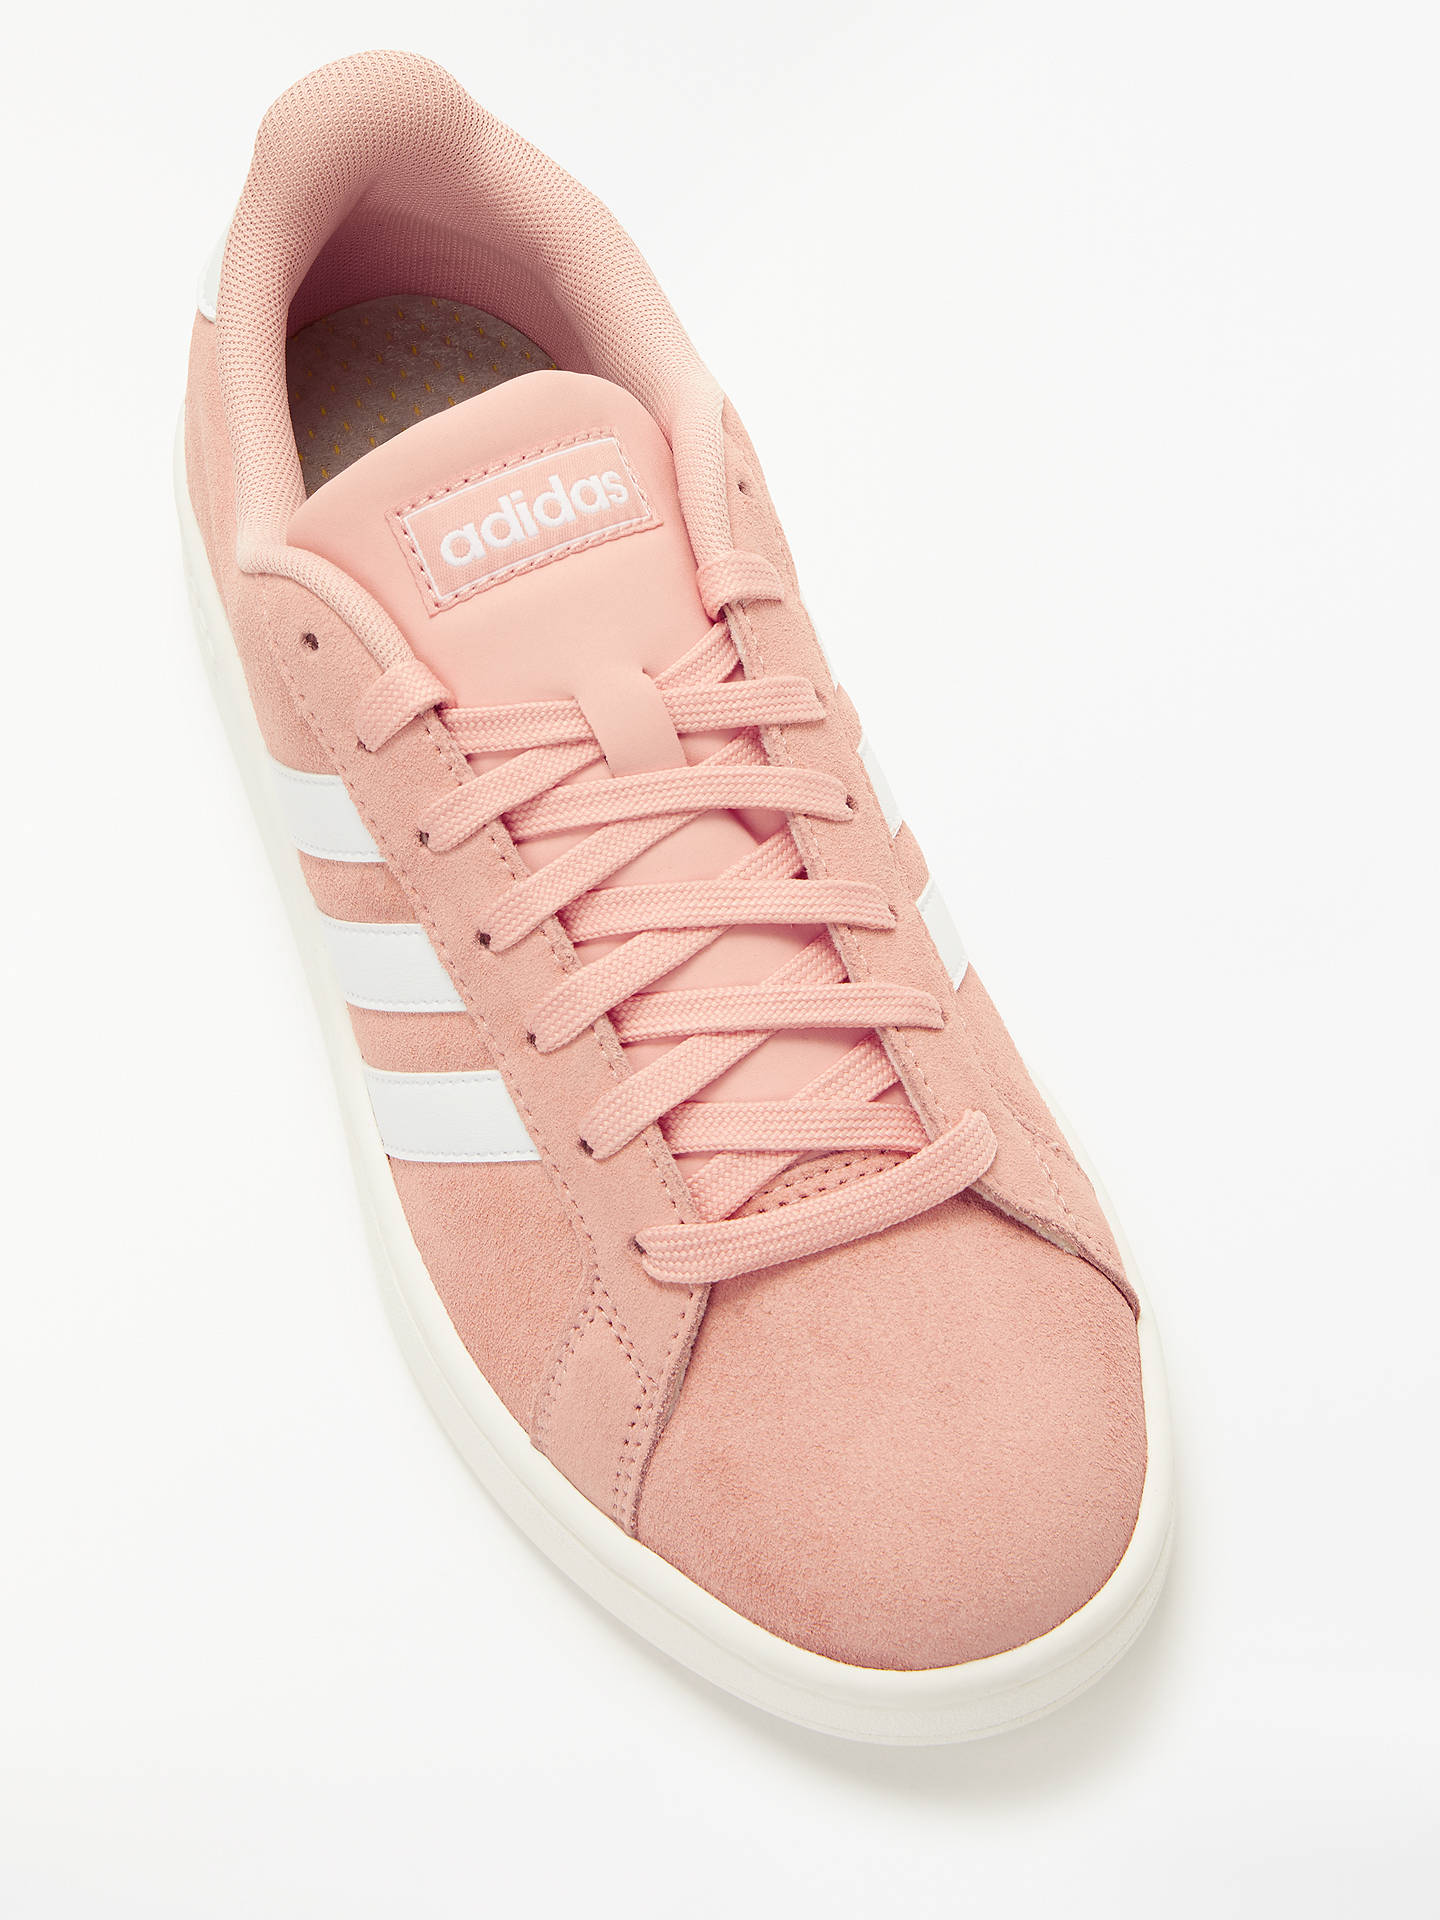 the best attitude c0dc5 ad62c ... Buy adidas Grand Court Women s Trainers, Dust Pink FTWR White, 4 Online  at ...